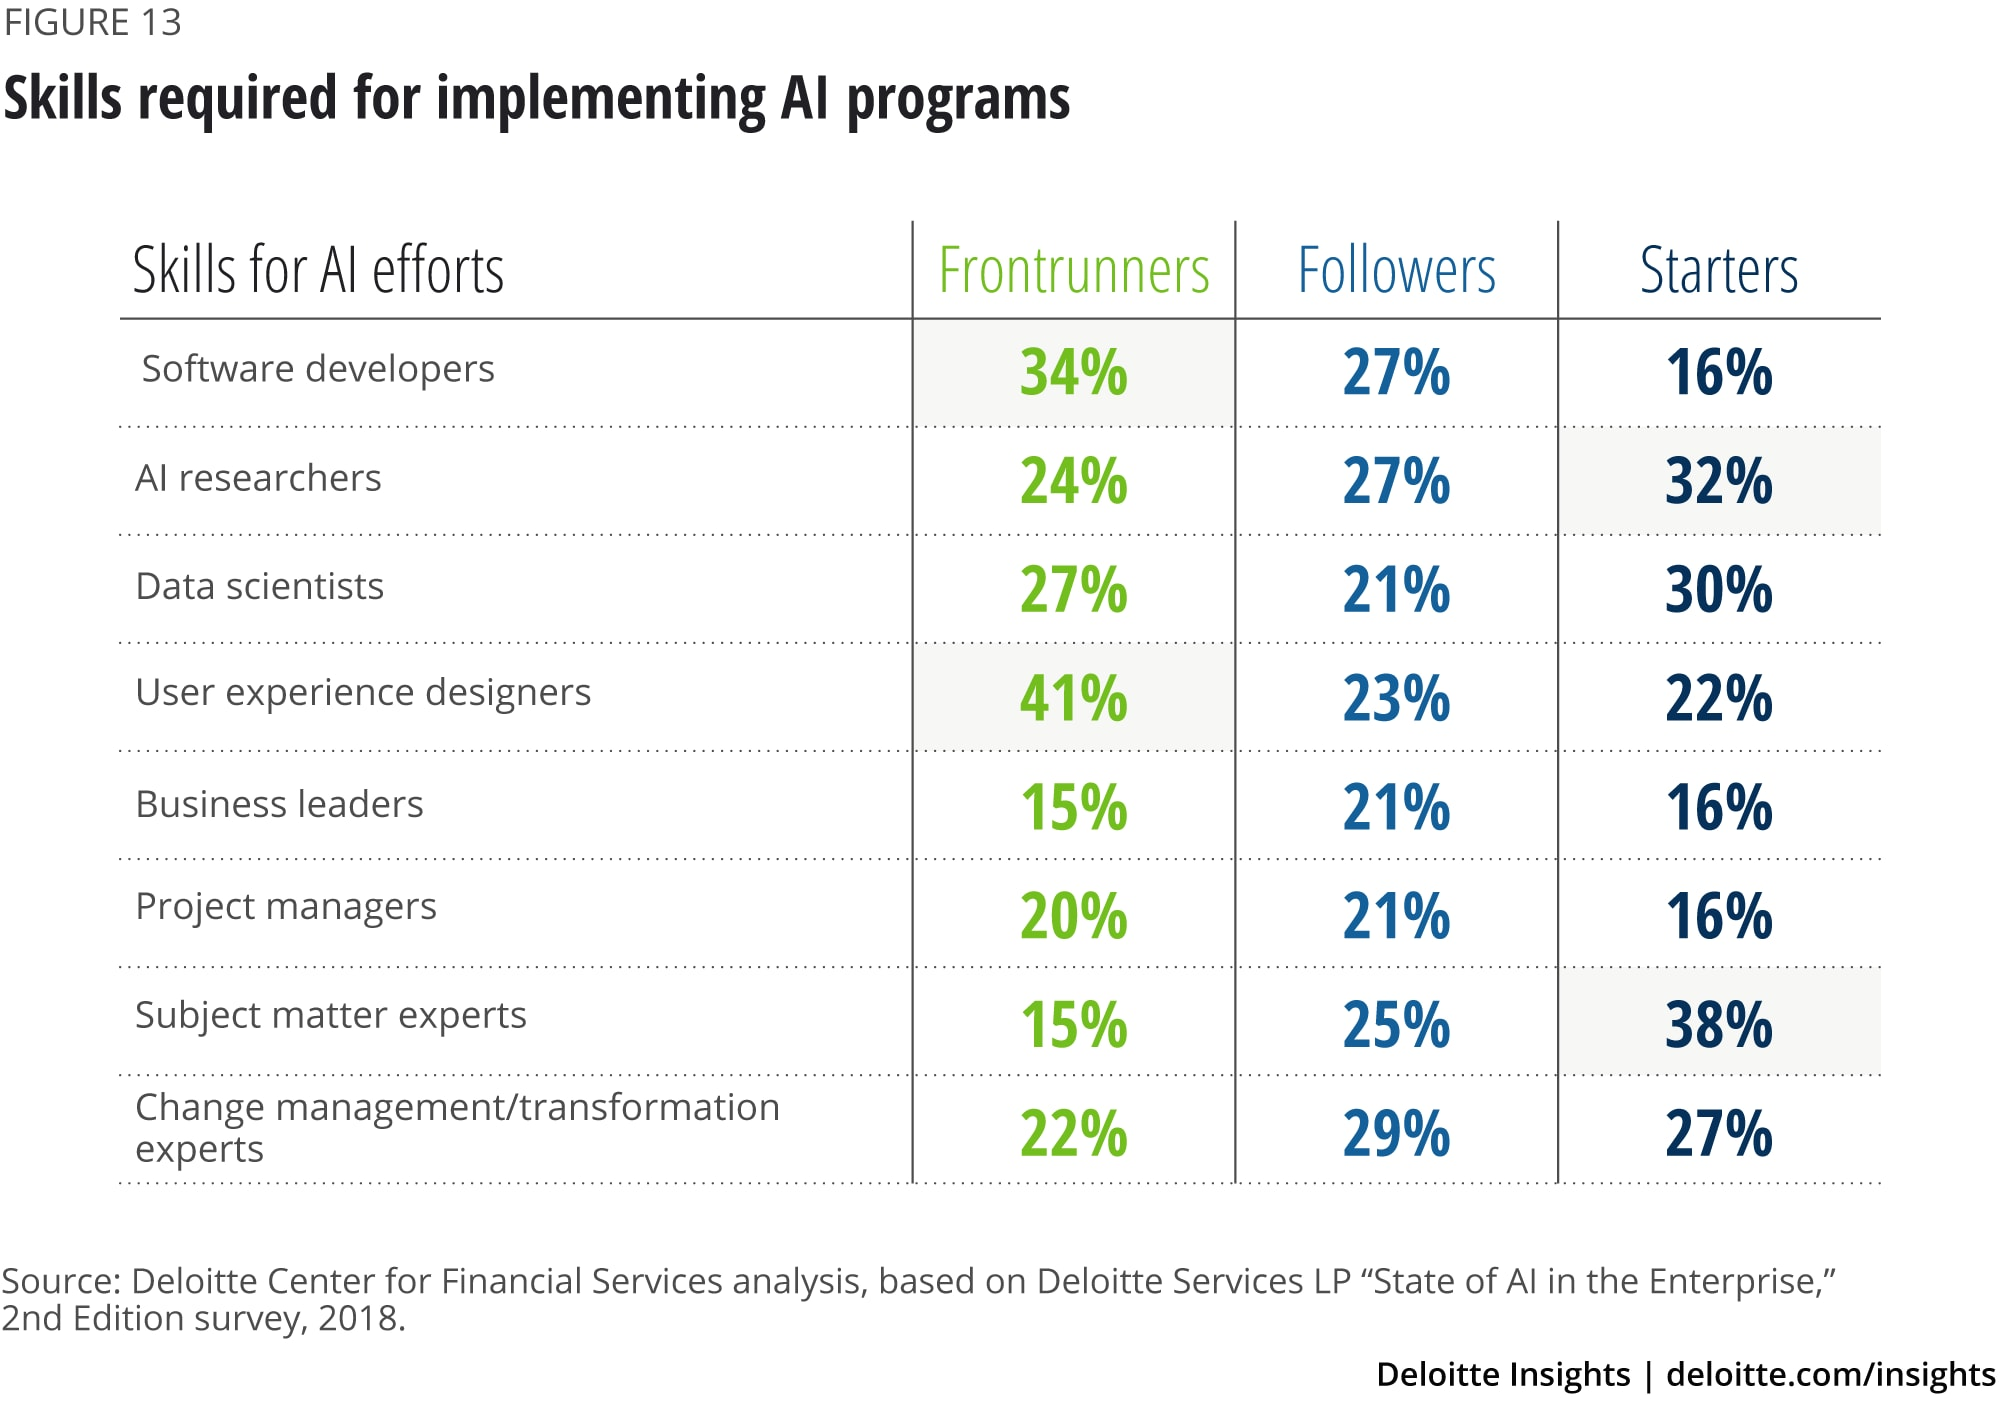 Skills required for implementing AI programs